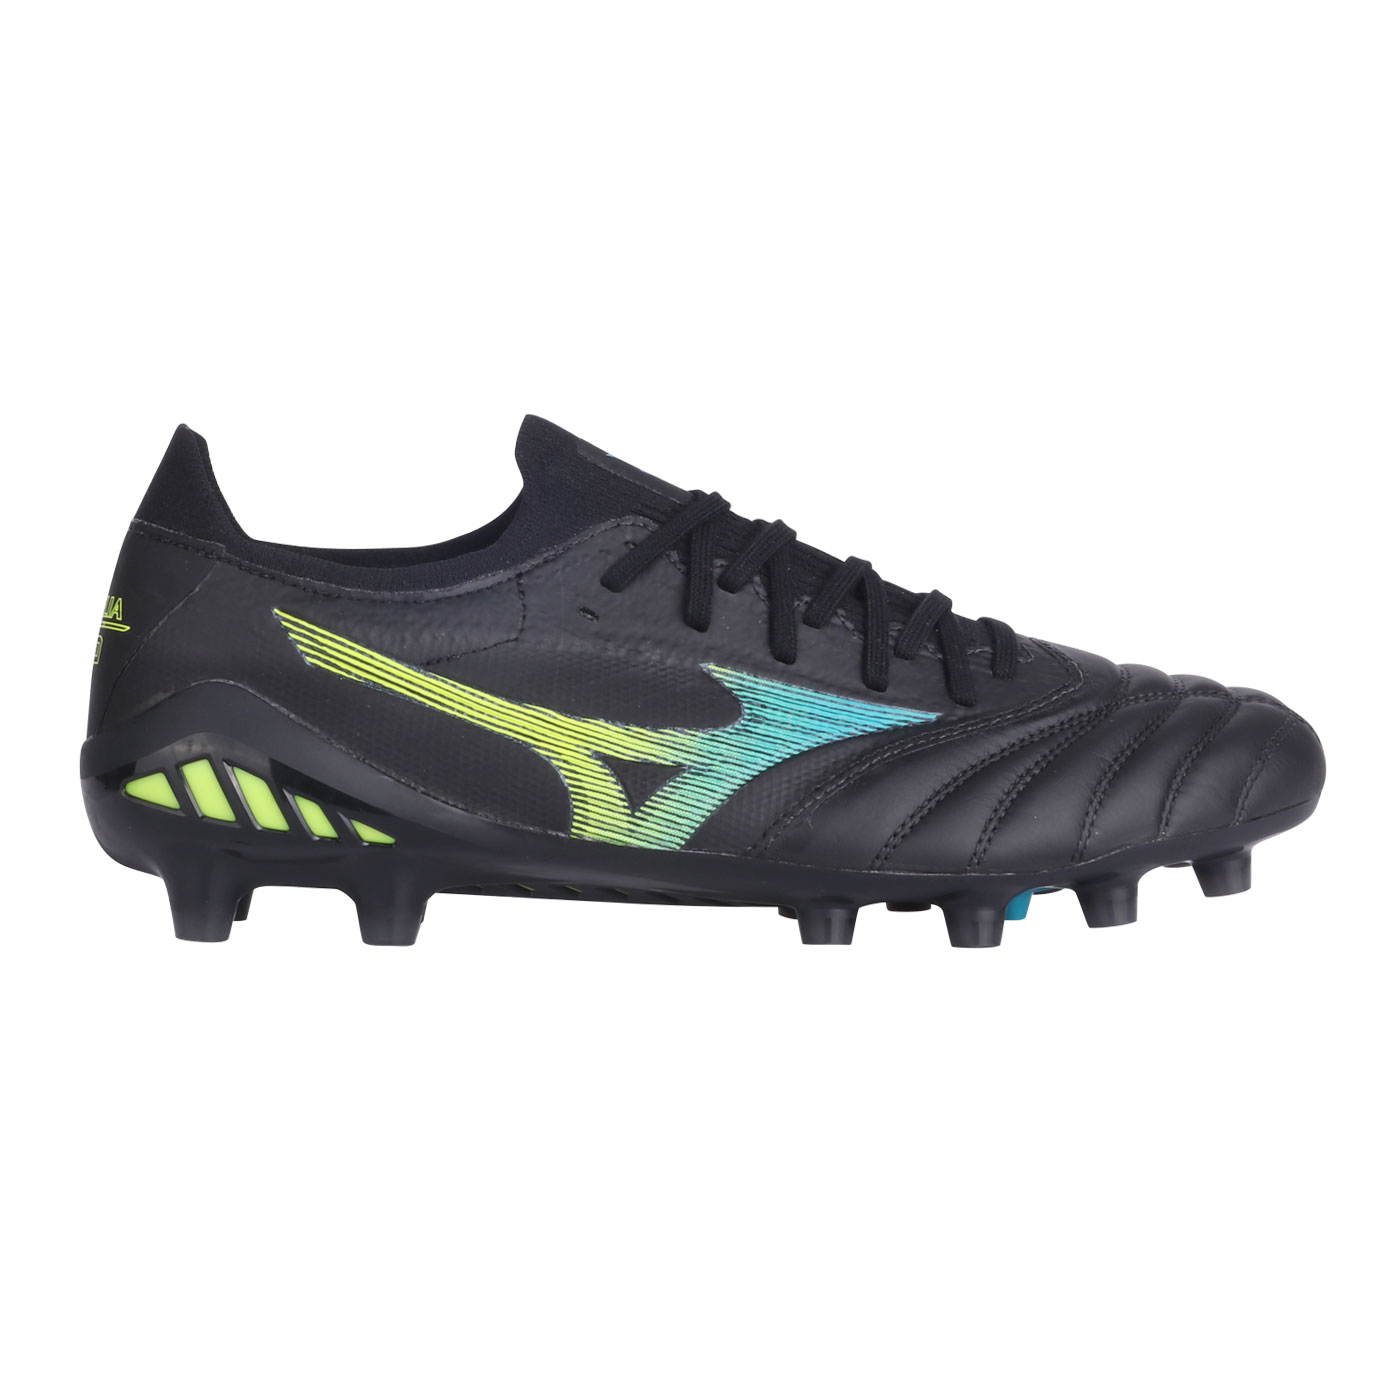 MORELIA NEO III BETA ELITE-BLACK/BLUE ATOLL